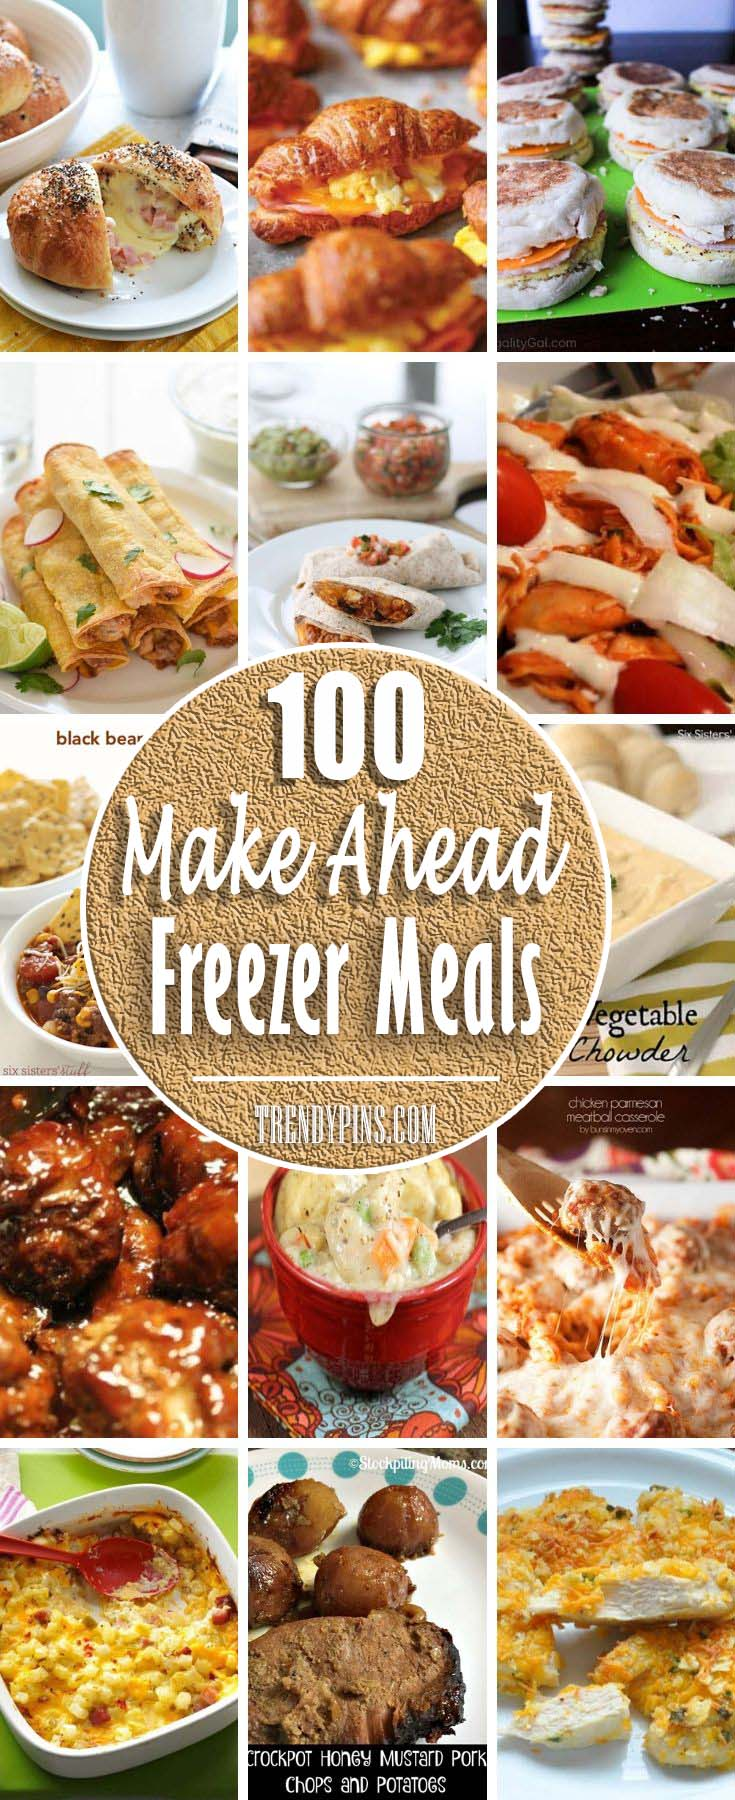 It is time to use your imagination. When you're at the right mood, make big batches of recipes that freeze well, and stow away leftovers for lazier nights. #meal #freezer #recipes #trendypins